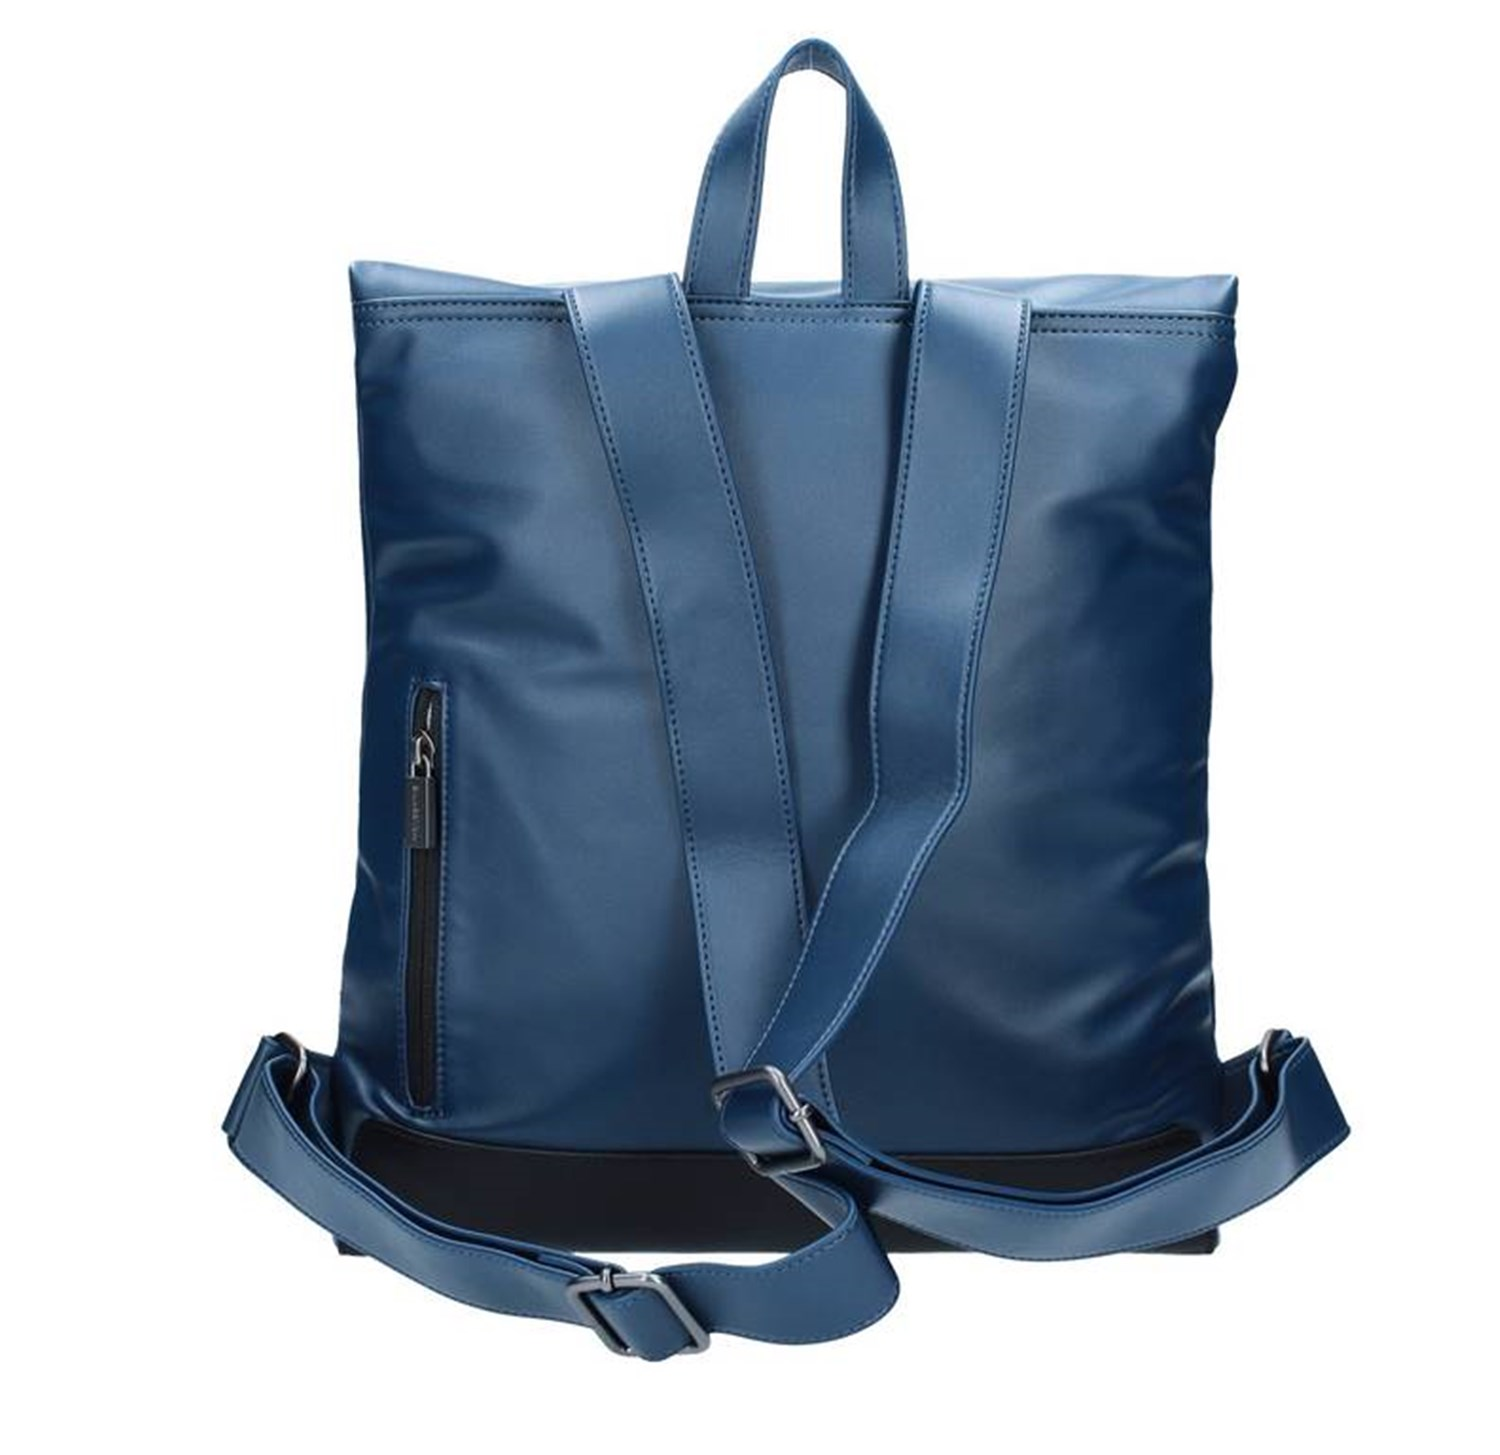 Moleskine Bags Accessories Backpacks BLUE ET86UFBK